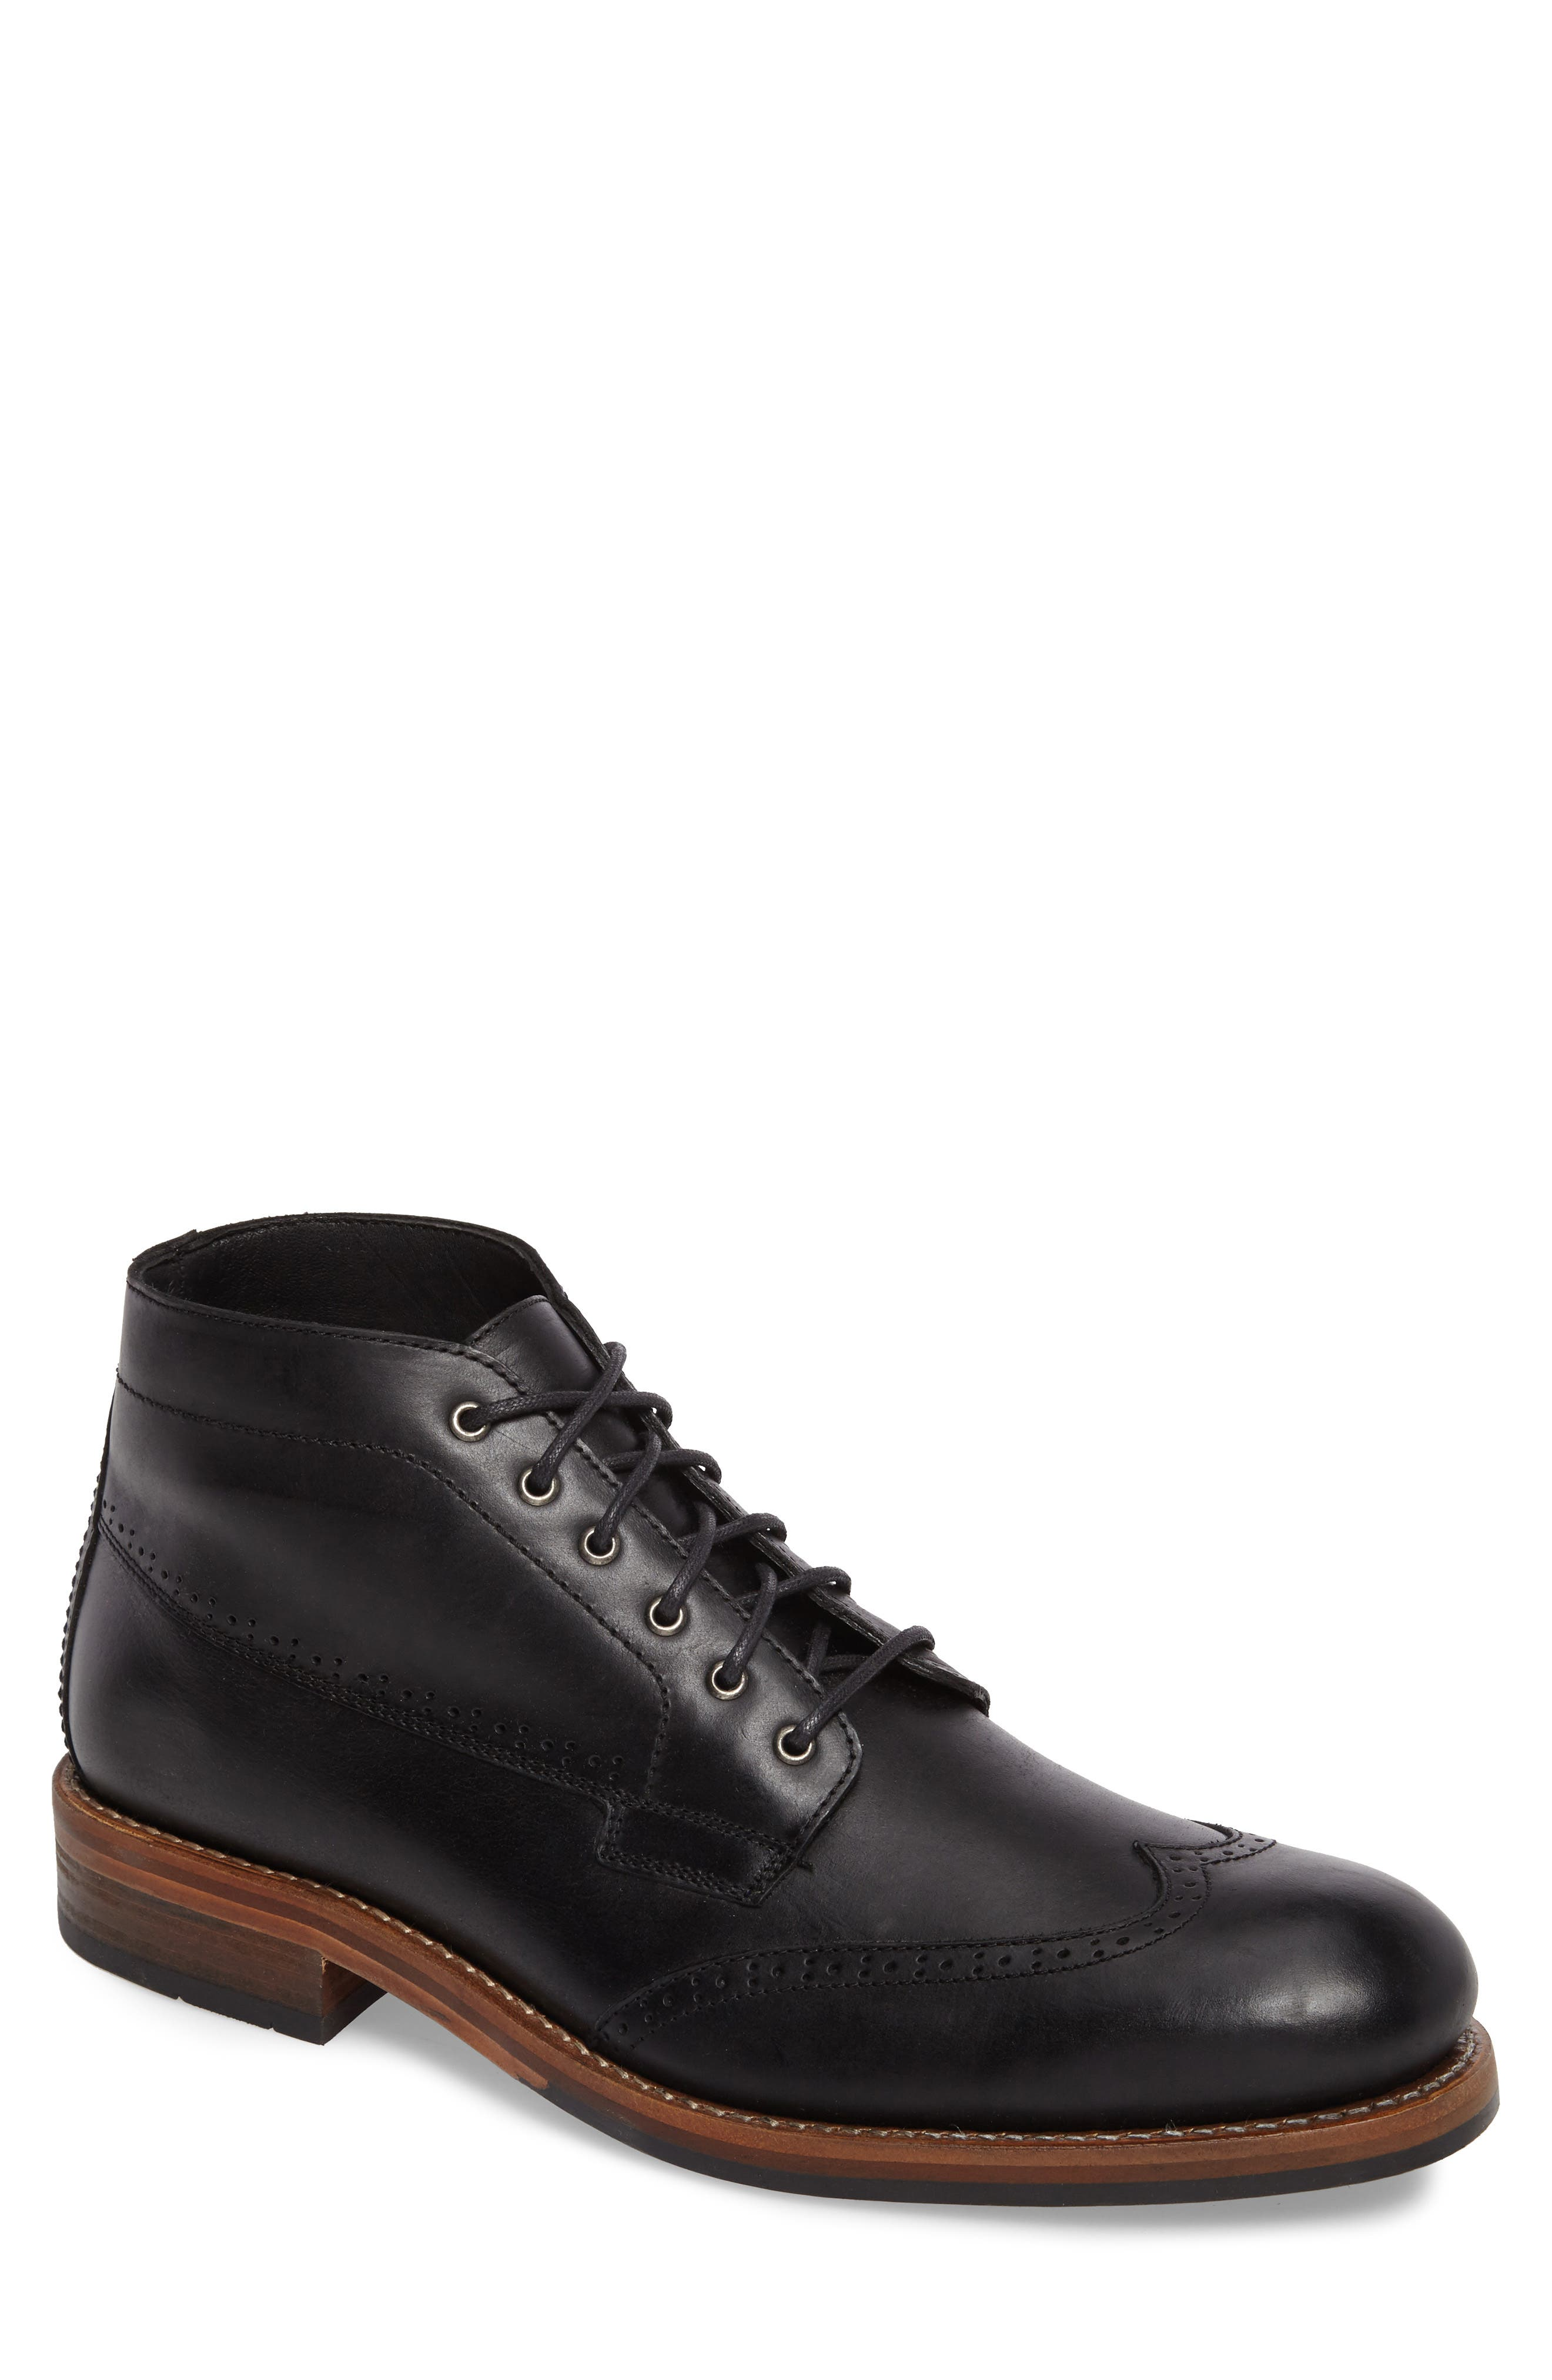 Harwell Wingtip Boot,                         Main,                         color, BLACK